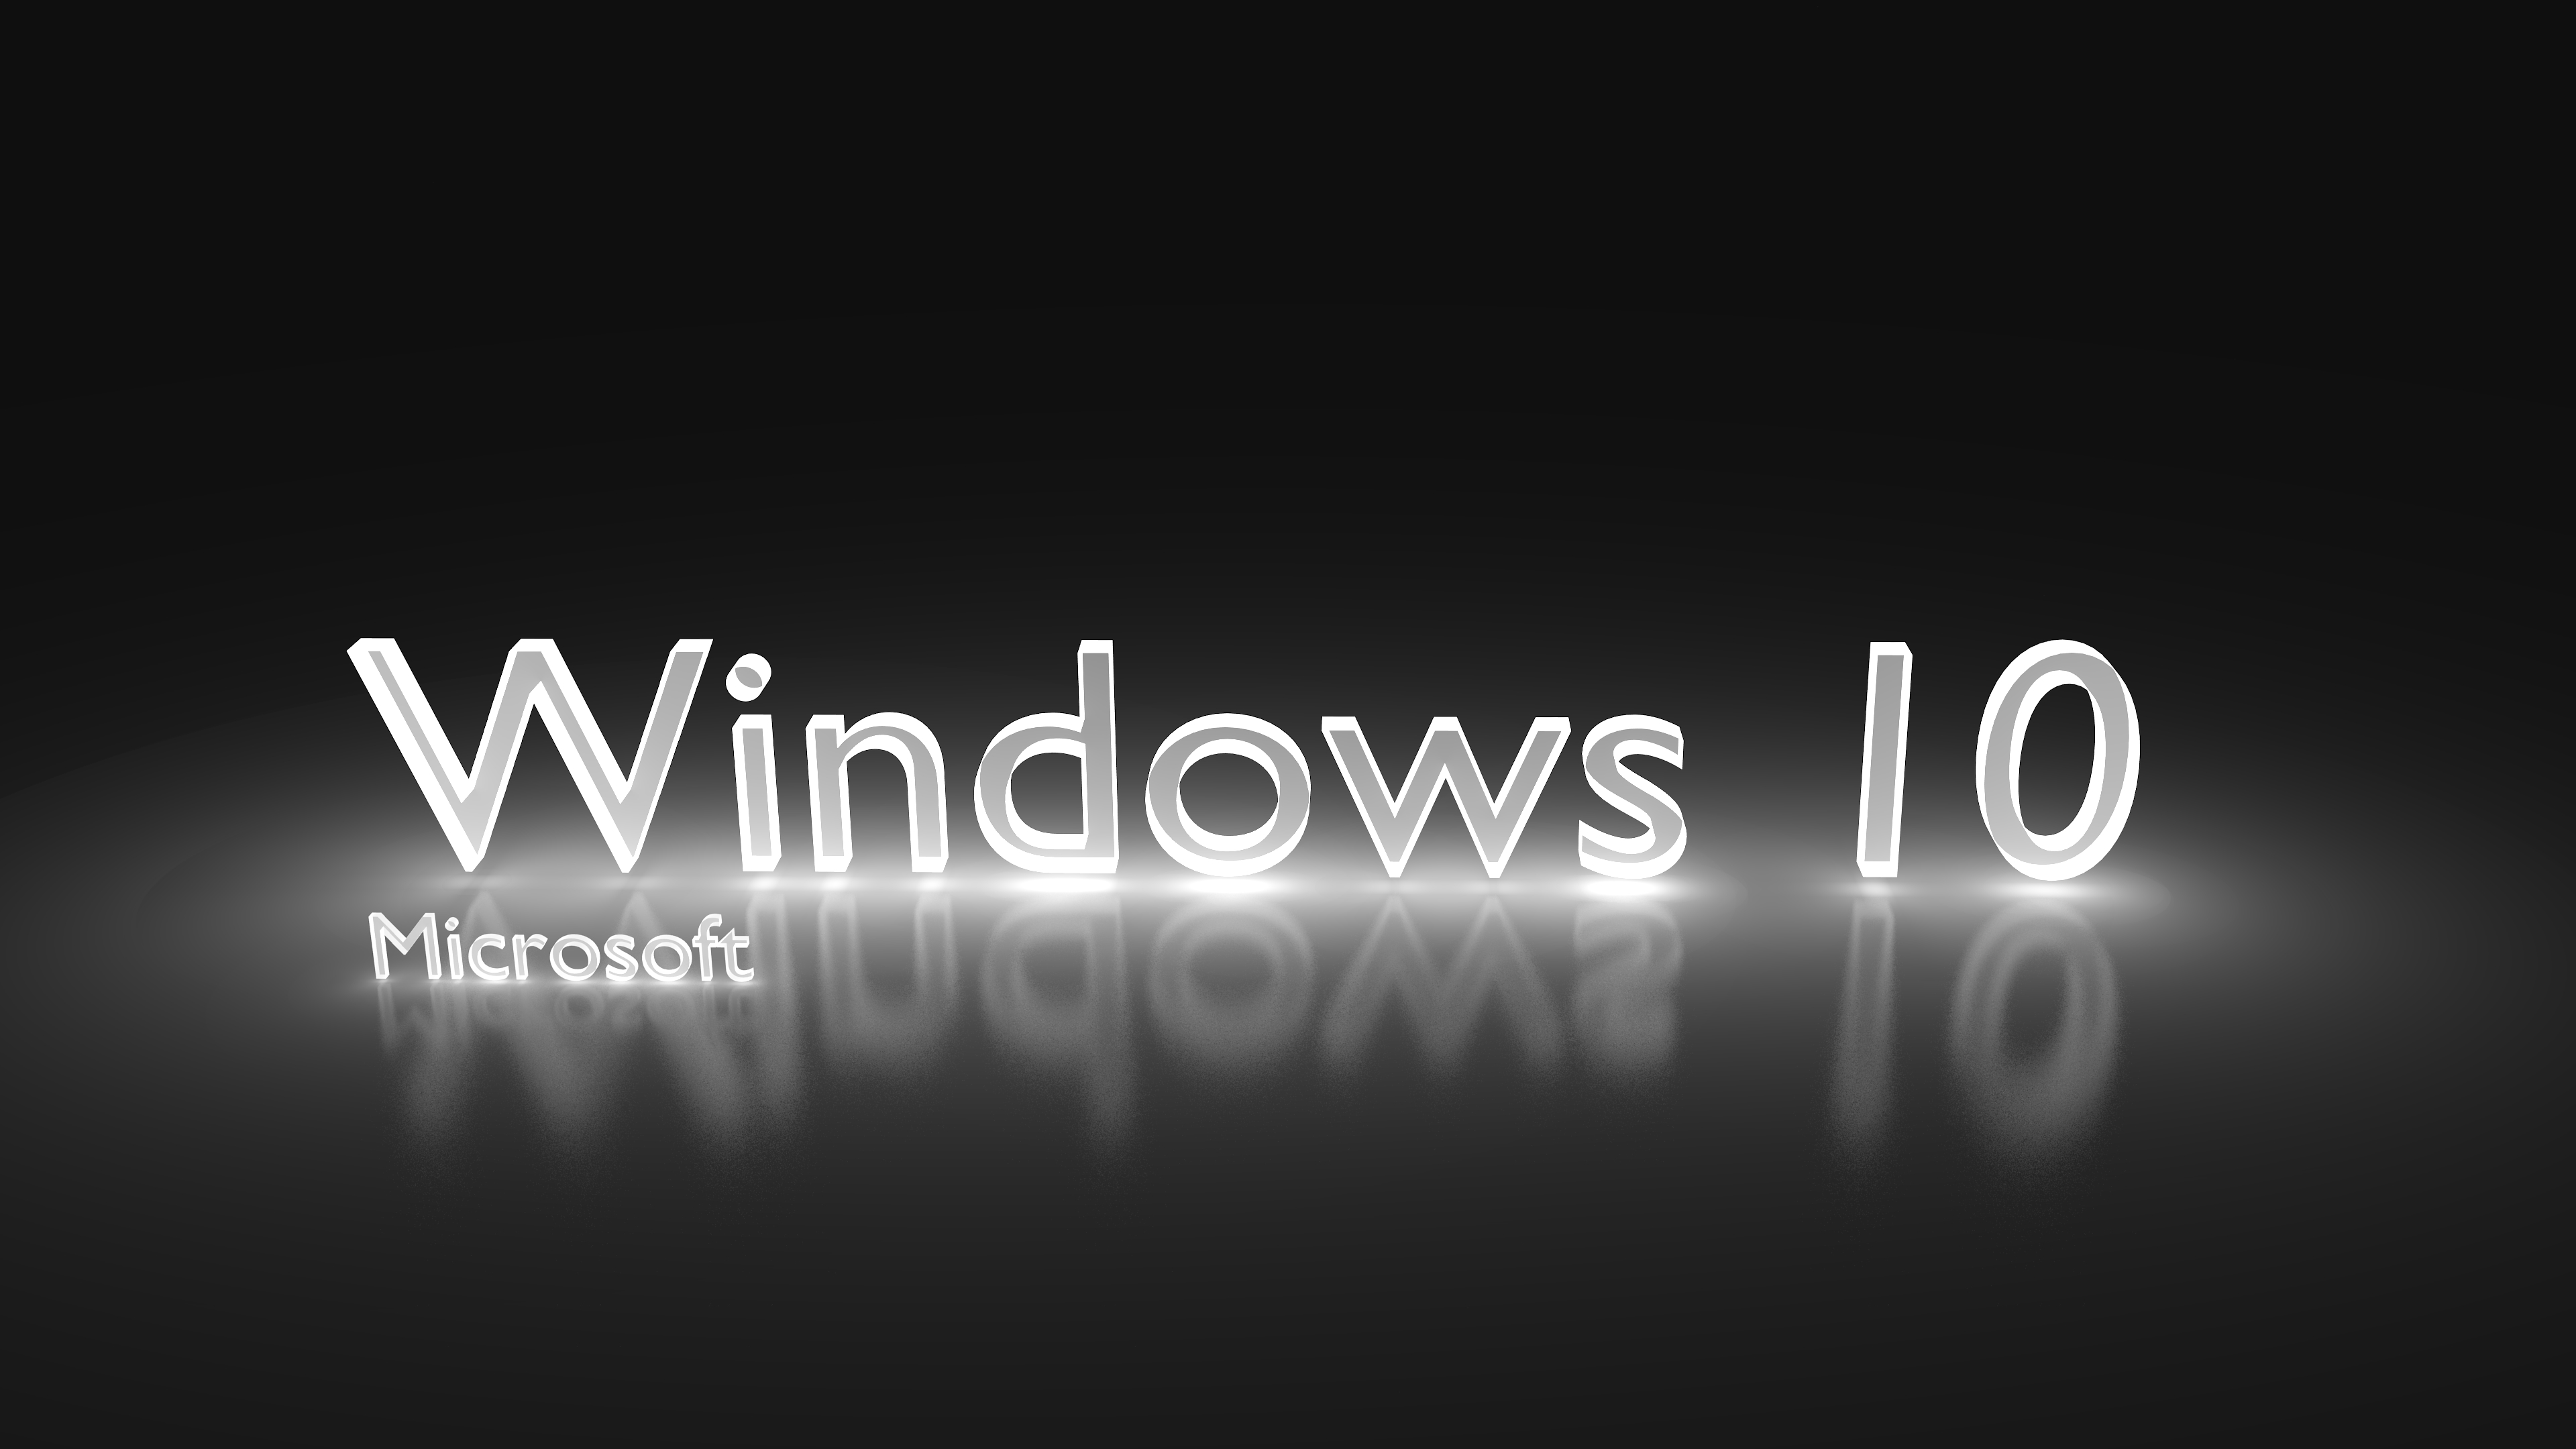 Windows 10 Glowing White 4k Ultra Hd Wallpaper Hintergrund